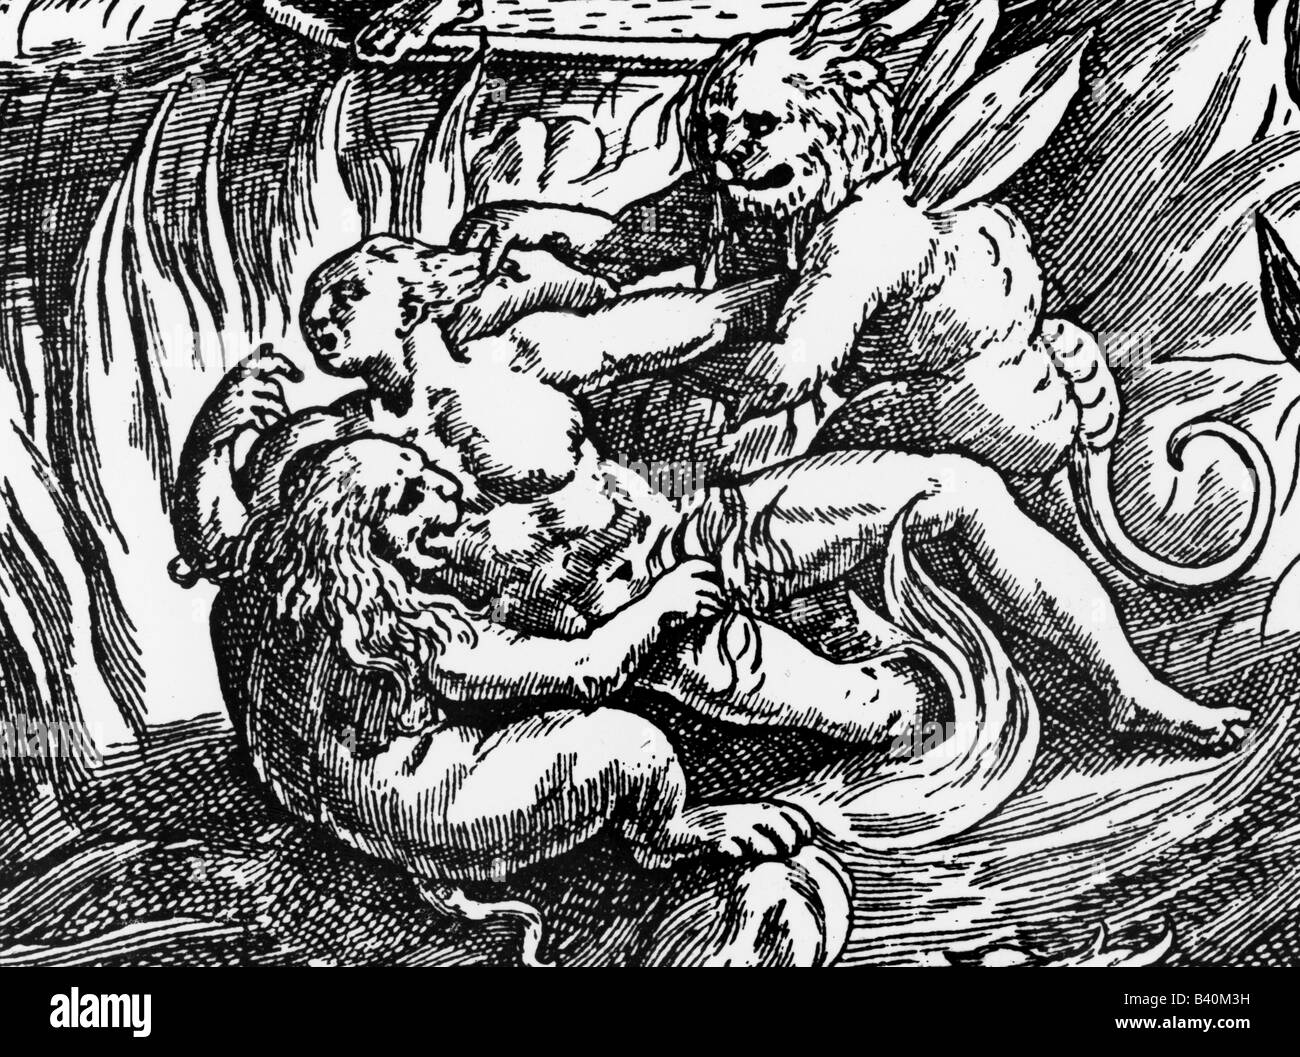 superstition, hell, pains and horrors, copper engraving by Martin de Vos, detail, 16th century, fire, devil, torture, - Stock Image